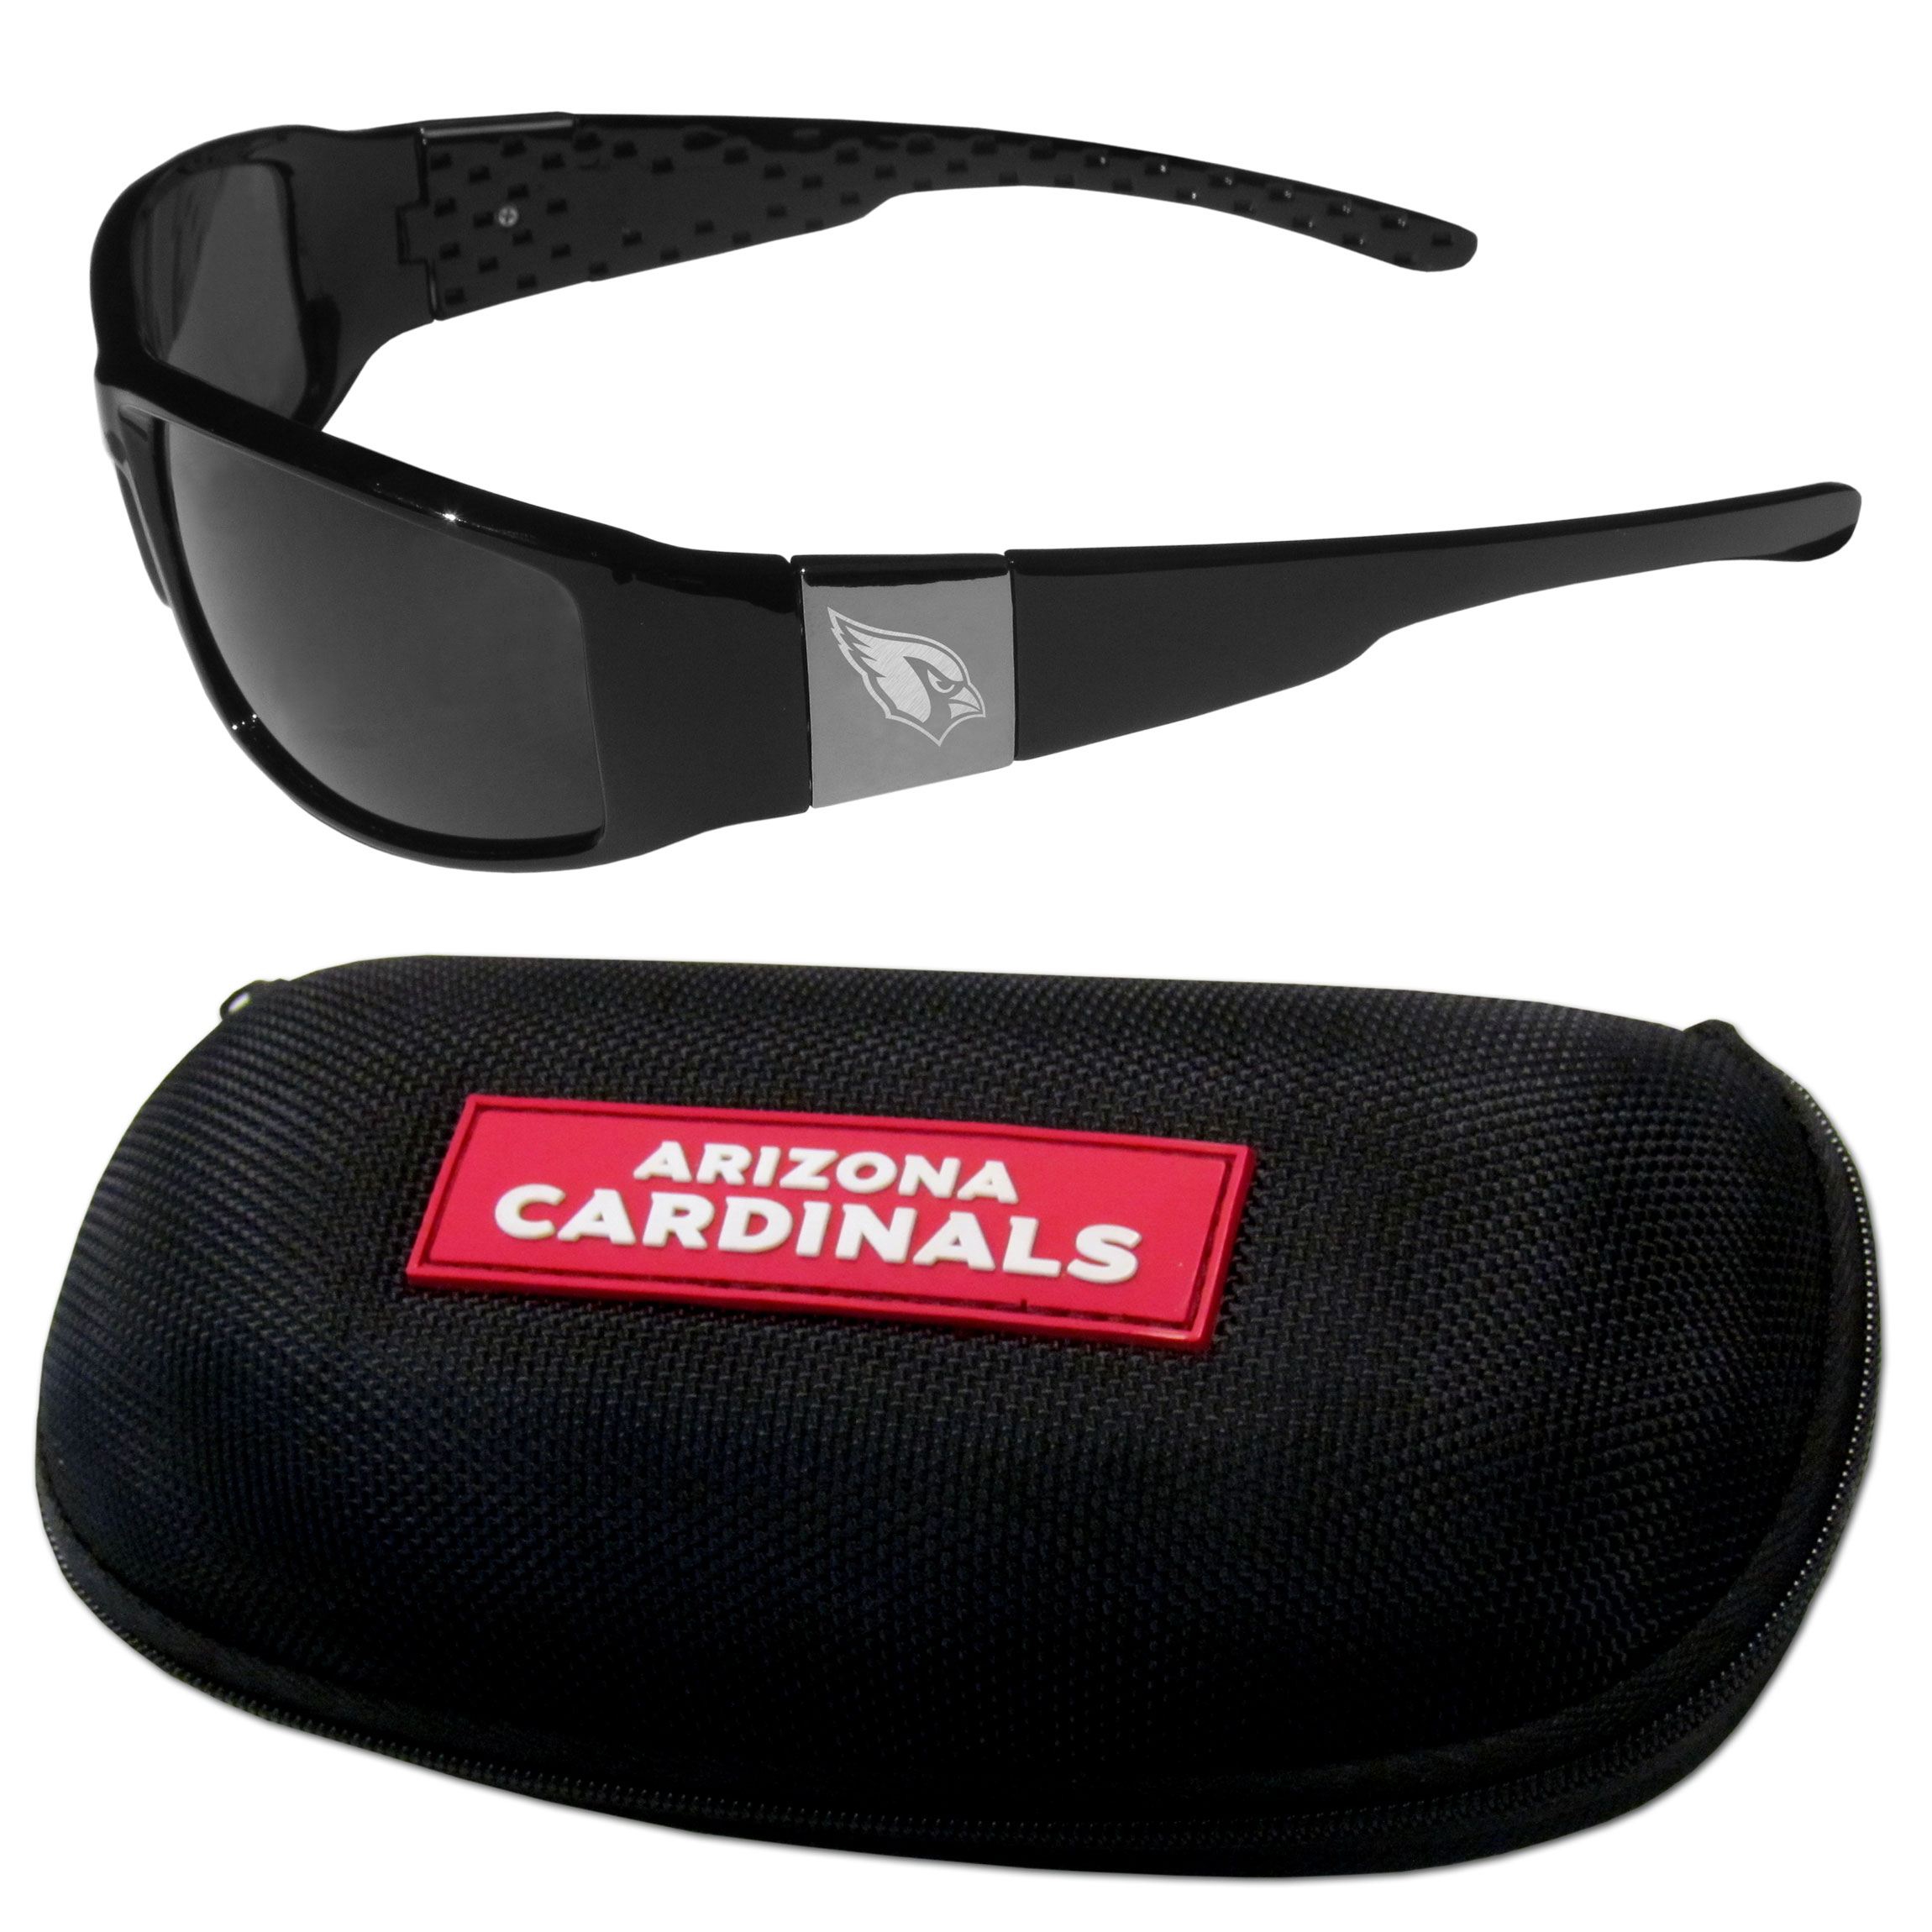 Arizona Cardinals Chrome Wrap Sunglasses and Zippered Carrying Case - This set includes our sleek and stylish Arizona Cardinals chrome wrap sunglasses and our hard shell, zippered carrying case. The sunglasses feature etched team logos on each arm and 100% UVA/UVB protection. The case features a large and colorful team emblem.